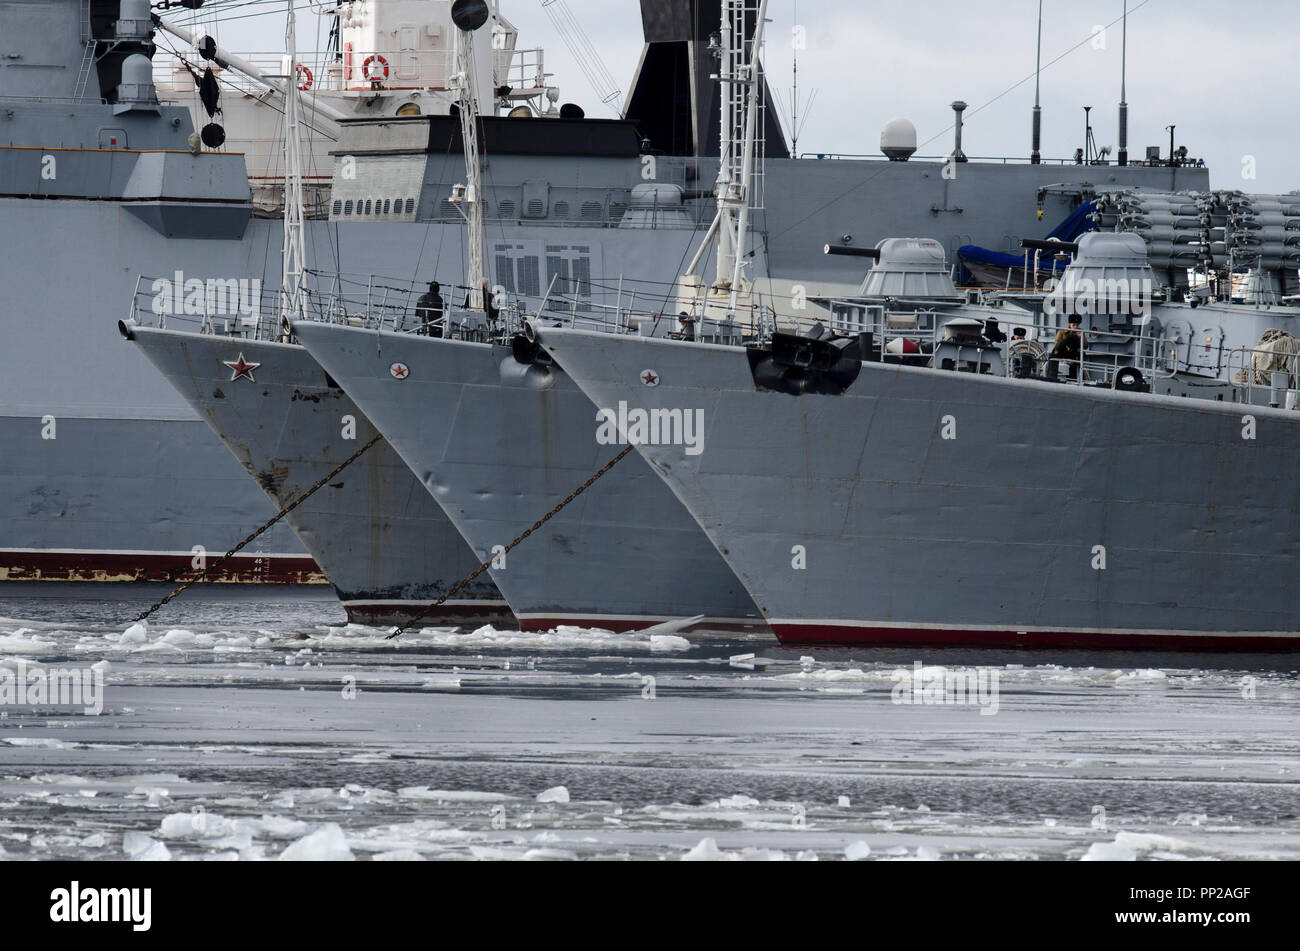 Kronstadt, St. Petersburg, Russia - March 15, 2017: Three patrol ships of the Baltic Fleet with red stars in the ice-cold harbor of Kronstadt - Stock Image